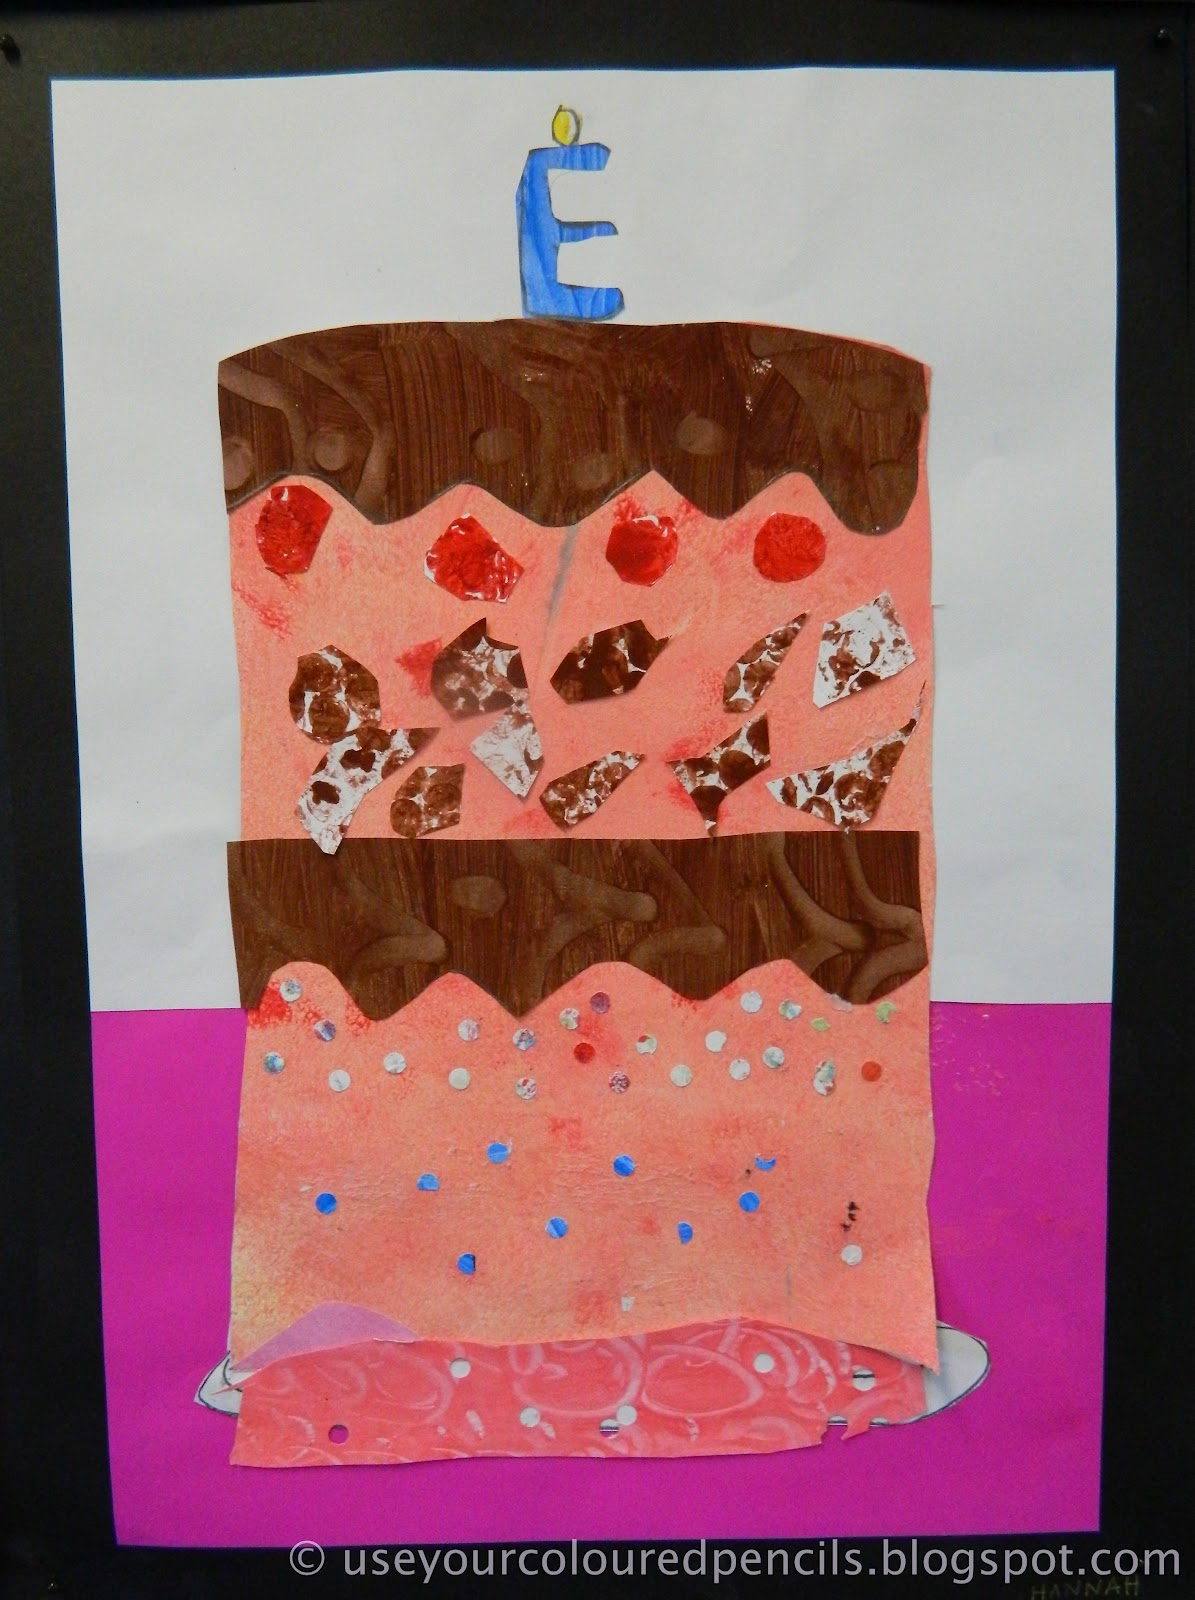 Use Your Coloured Pencils: Eric Carle's Birthday Cake